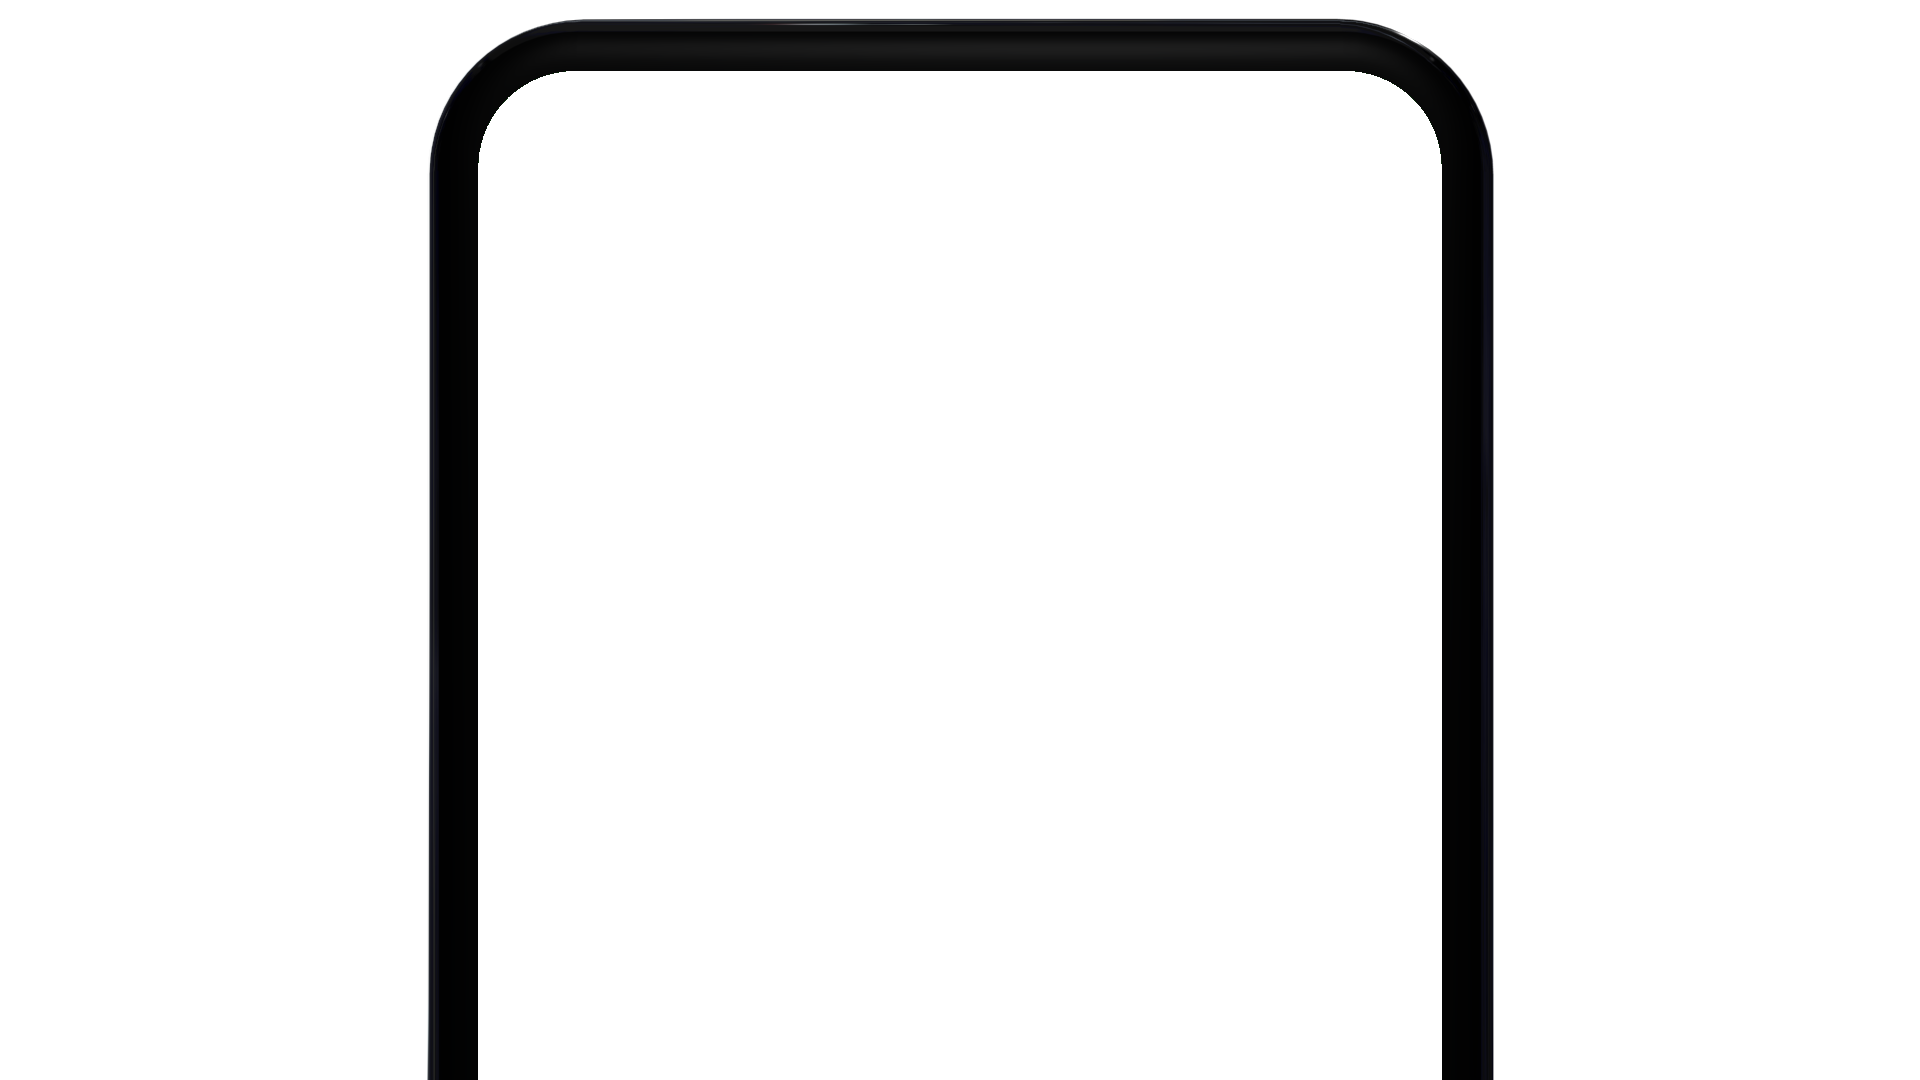 Top part of a generic phone